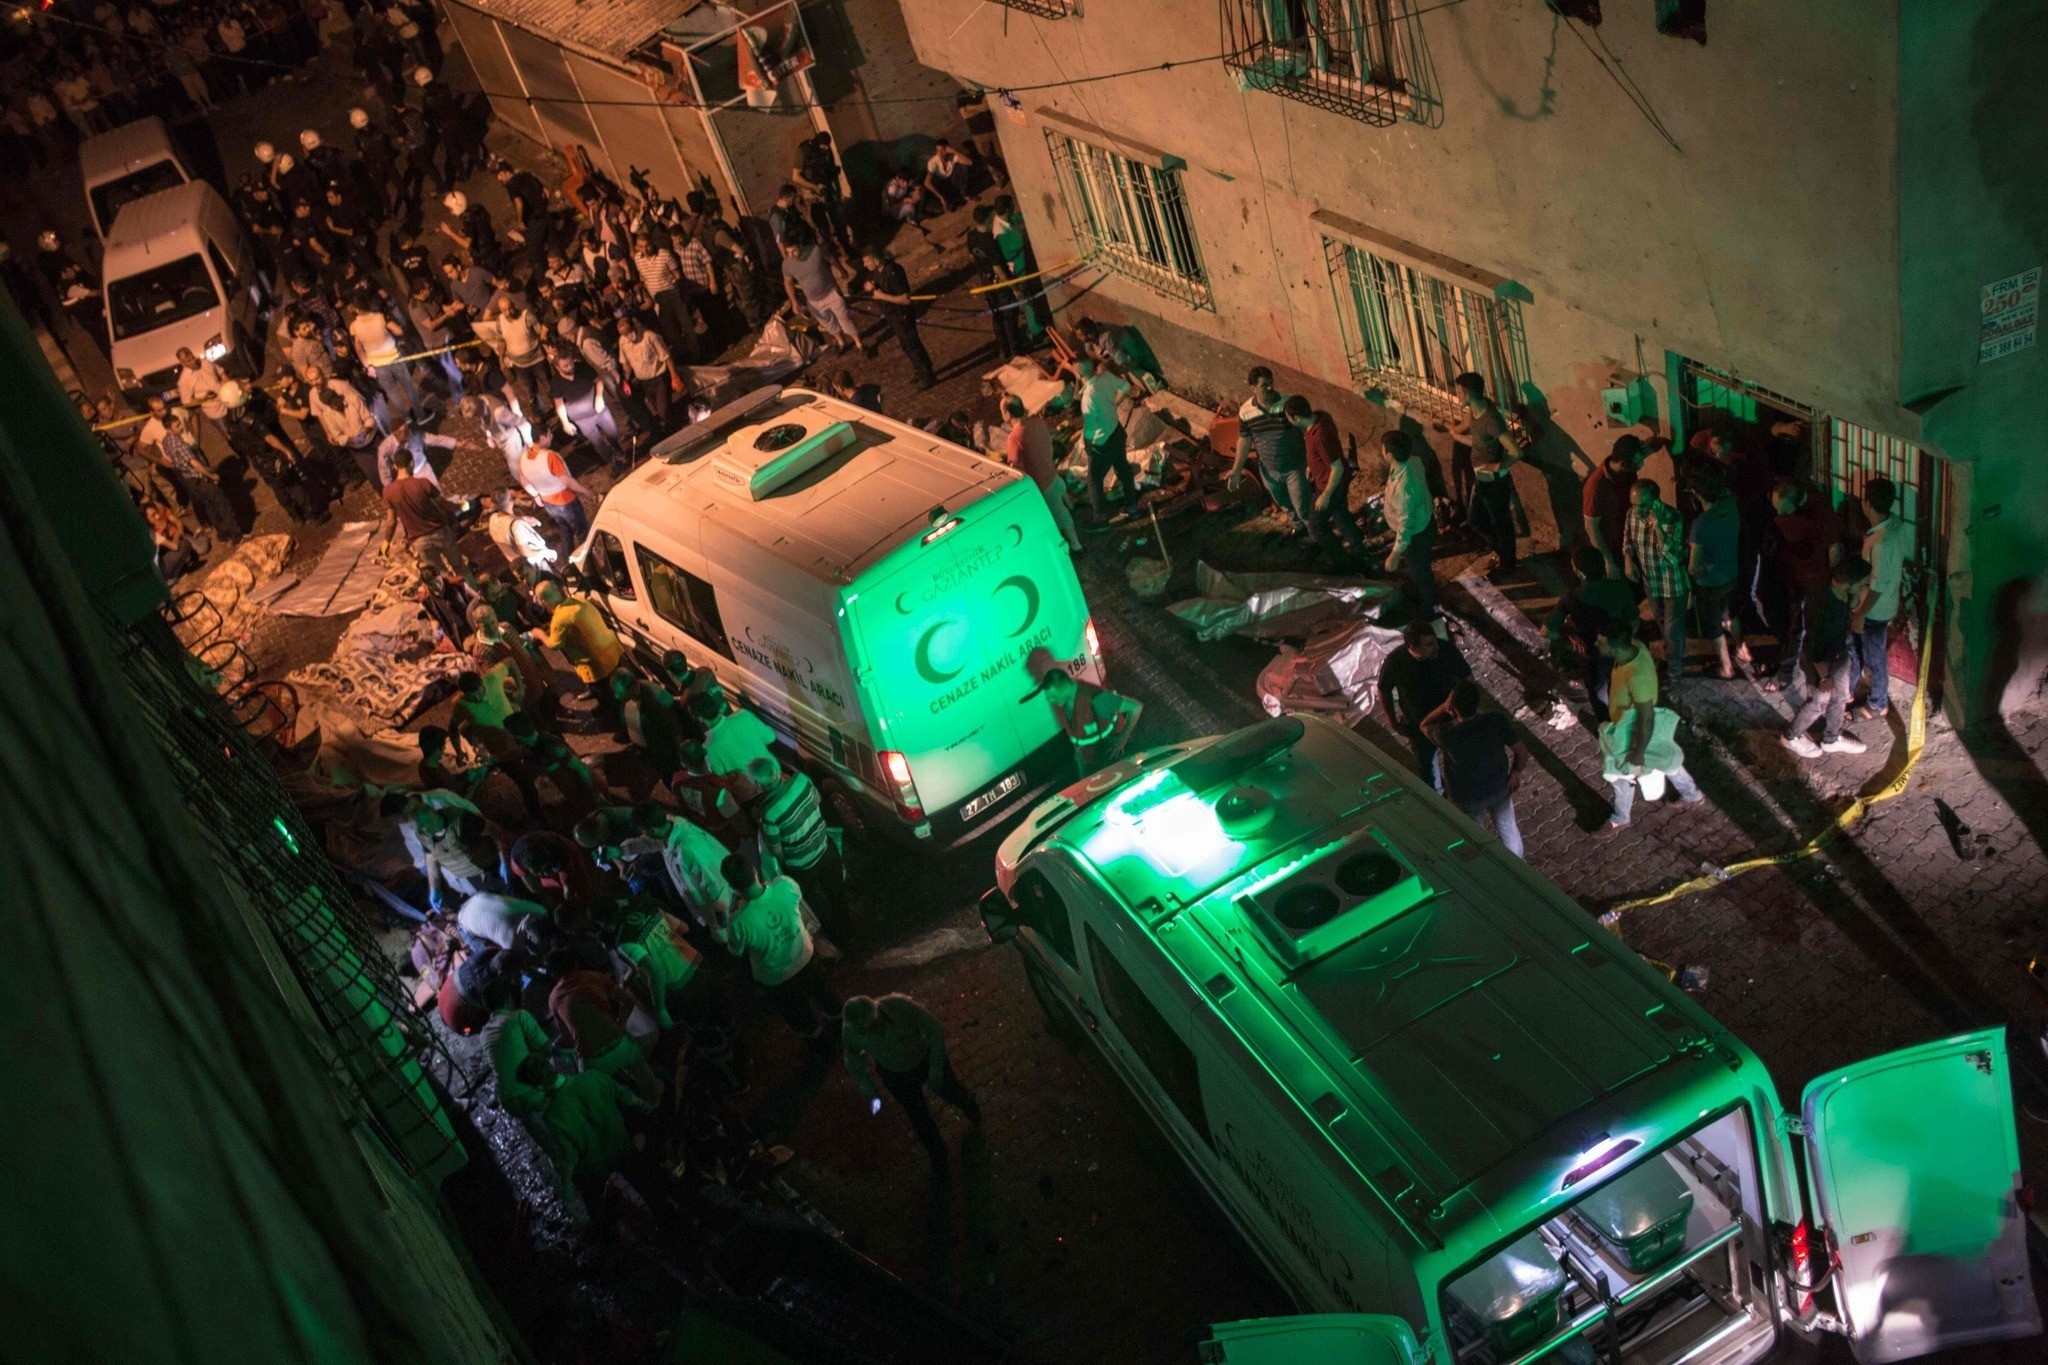 Ambulances arrive at site of an explosion on August 20, 2016 in Gaziantep following a late night militant attack on a wedding party in southeastern Turkey. (AFP Photo)